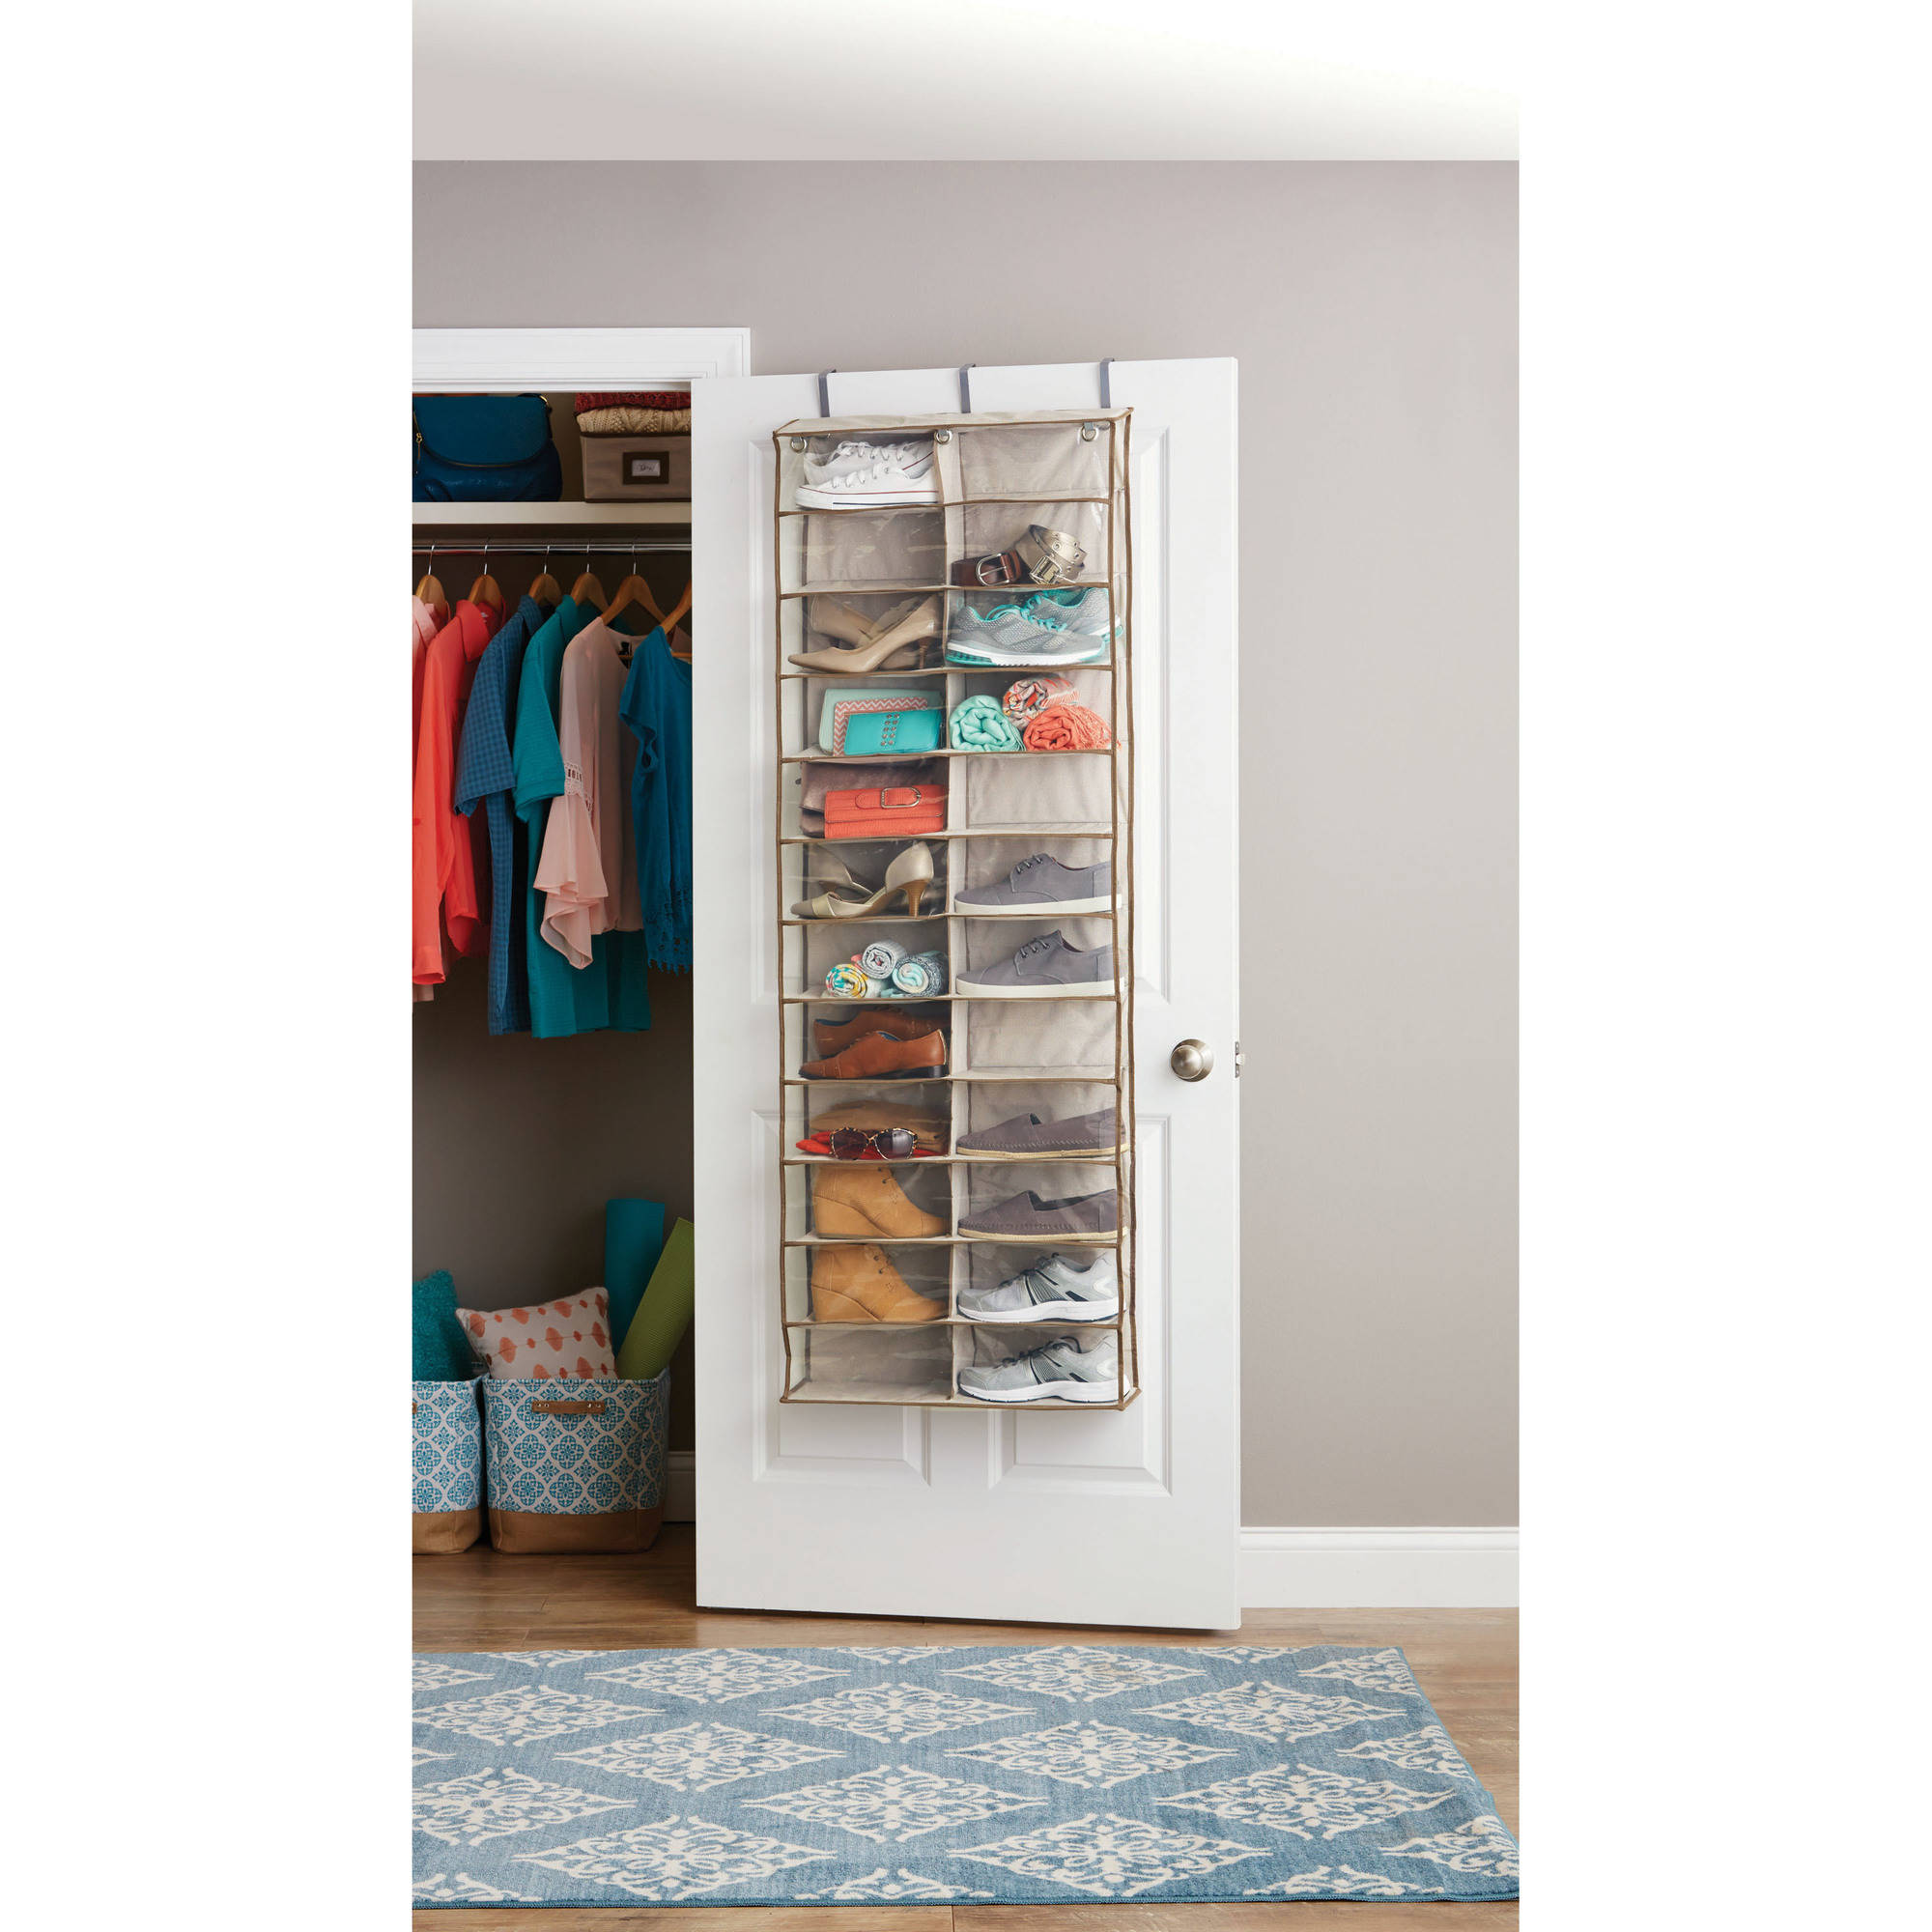 Better Homes and Gardens Over-the-Door Shoe Organizer  sc 1 st  Walmart & Better Homes and Gardens Over-the-Door Shoe Organizer - Walmart.com